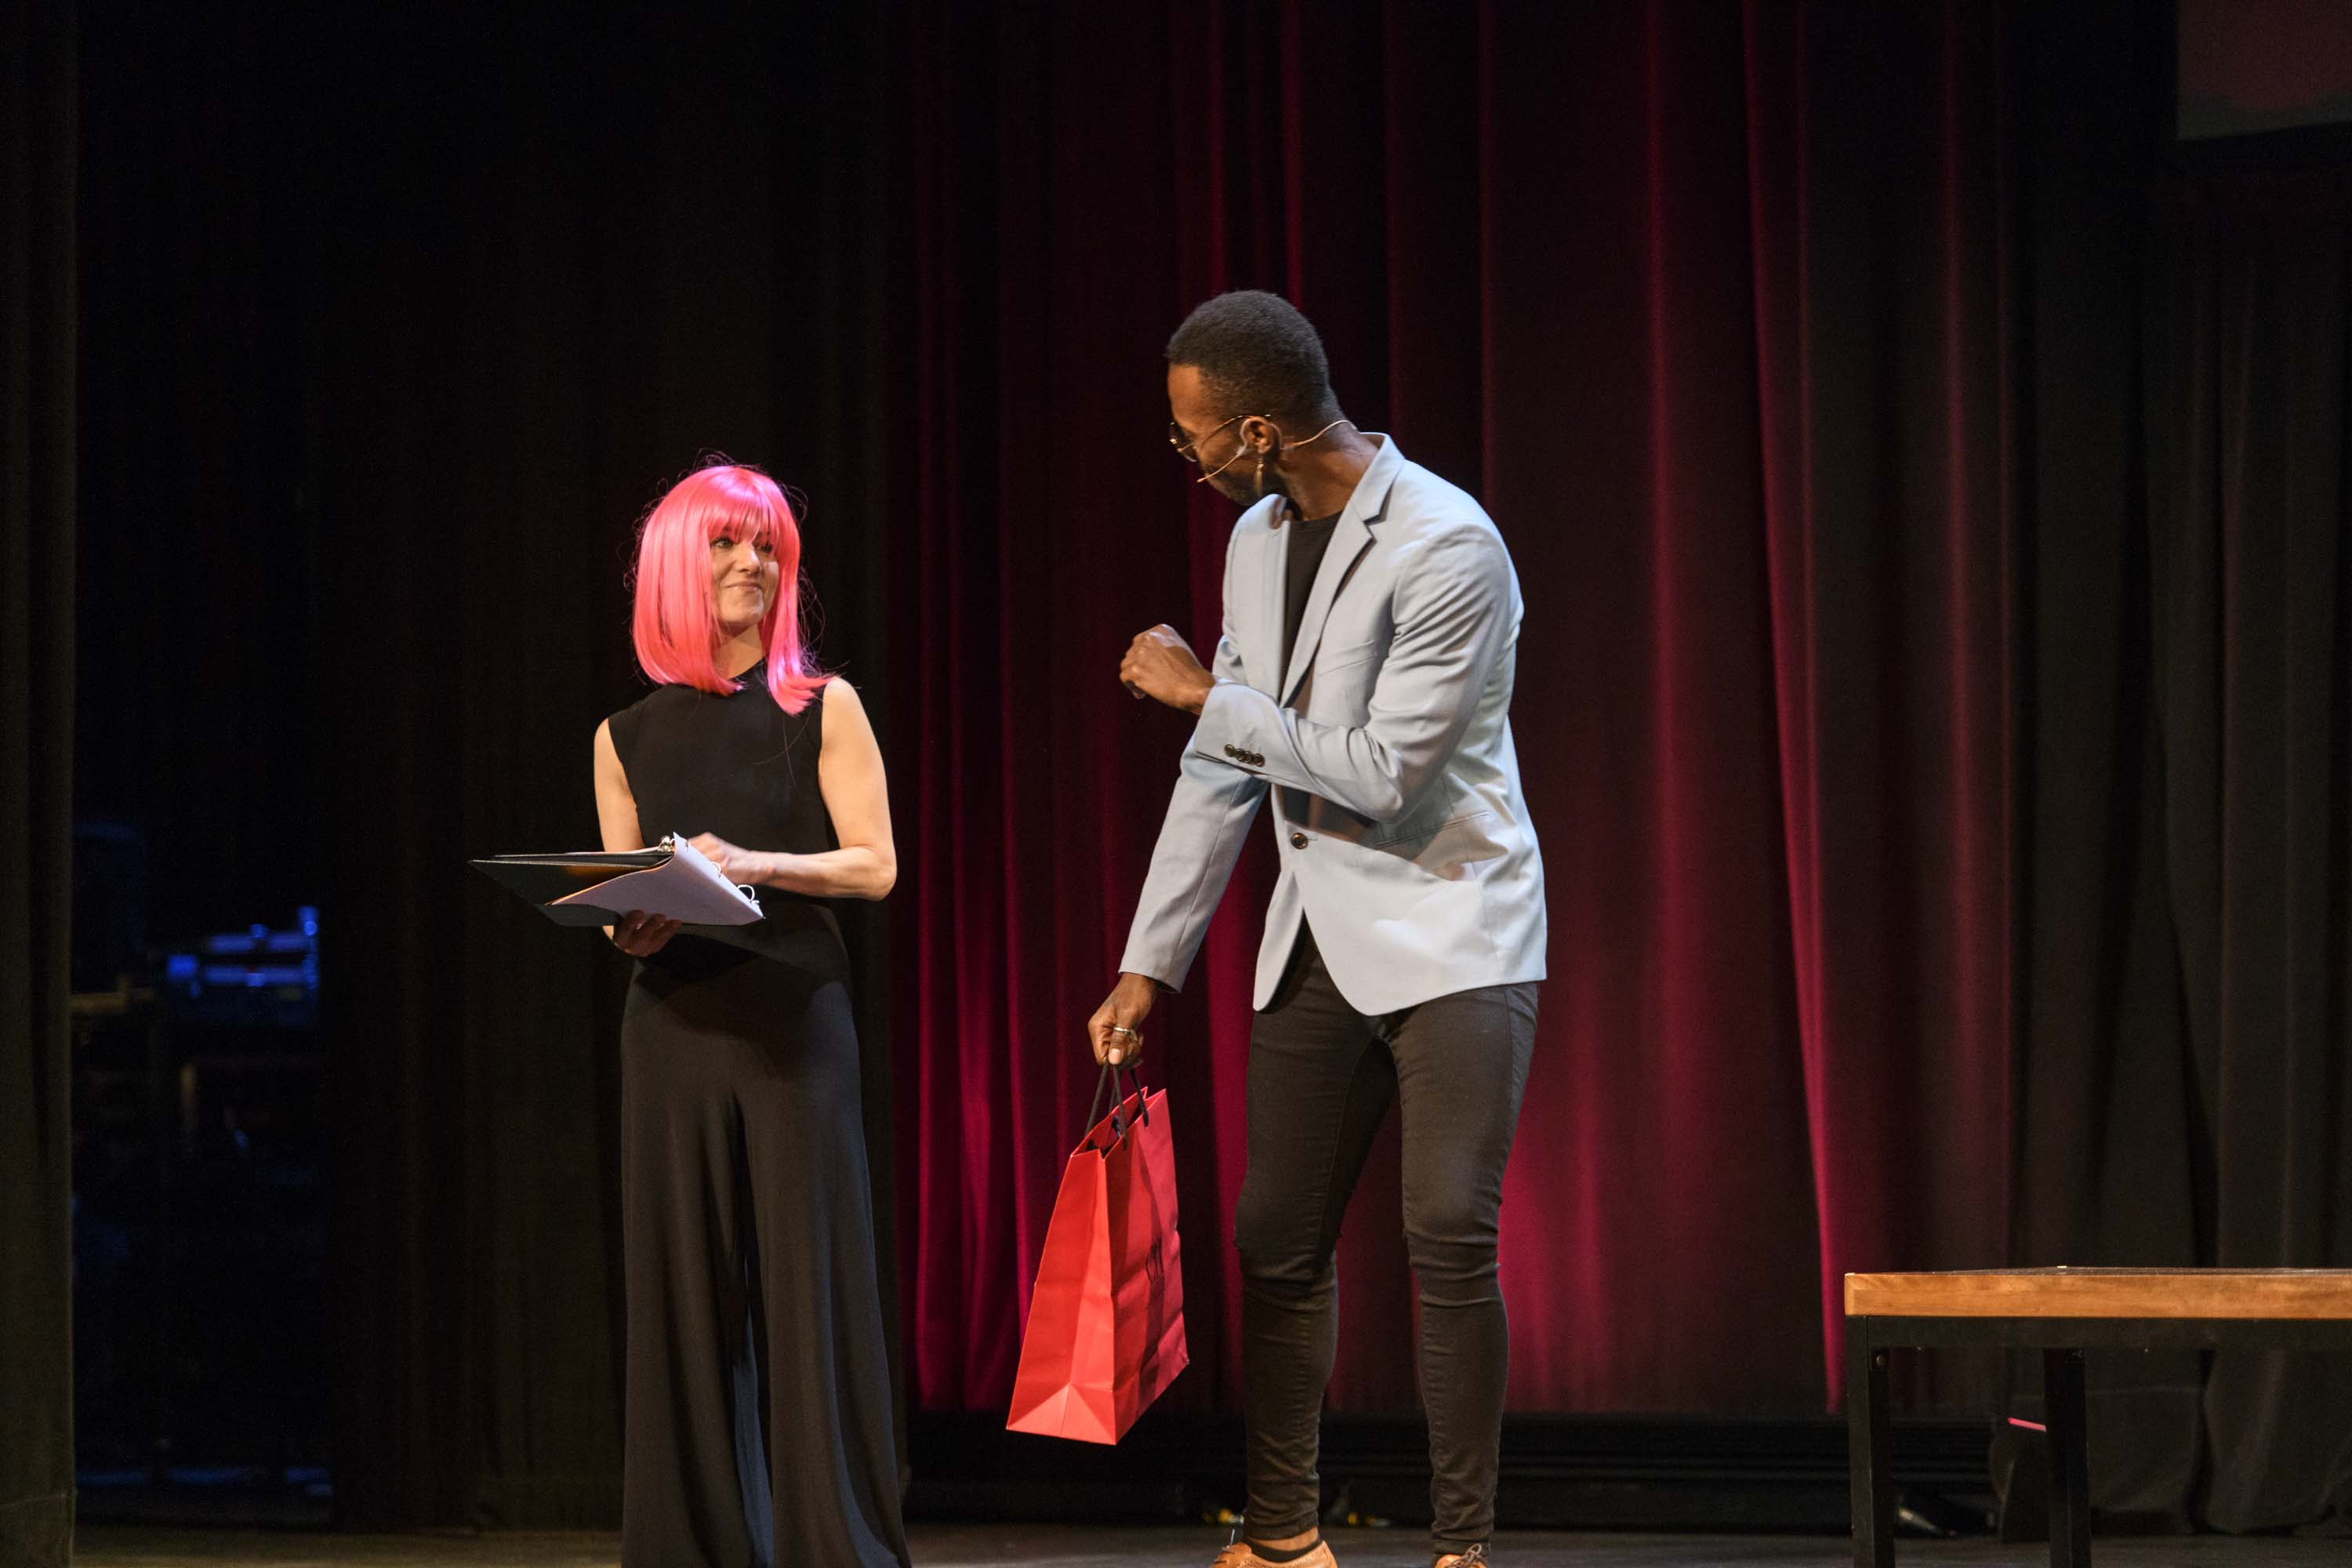 Woman in pink wig talks to man on stage